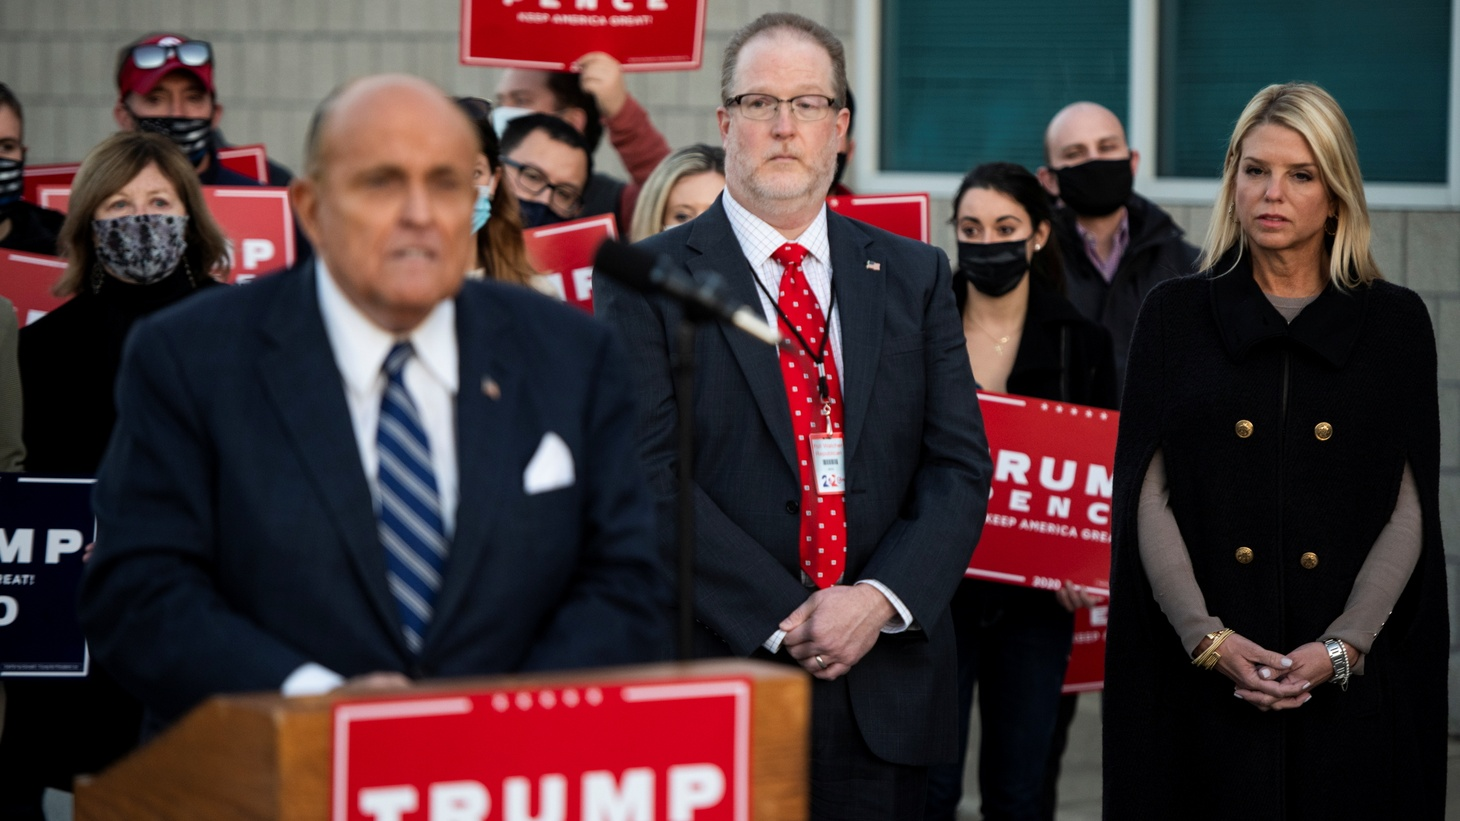 Former New York City Mayor Rudy Giuliani, personal attorney to U.S. President Donald Trump, speaks next to Trump campaign ballot counting observer Jeremy Mercer and former Florida Attorney General Pam Bondi during a news conference to discuss filing election-related lawsuits at Atlantic Aviation PHL private air terminal in Philadelphia, Pennsylvania, U.S. November 4, 2020.